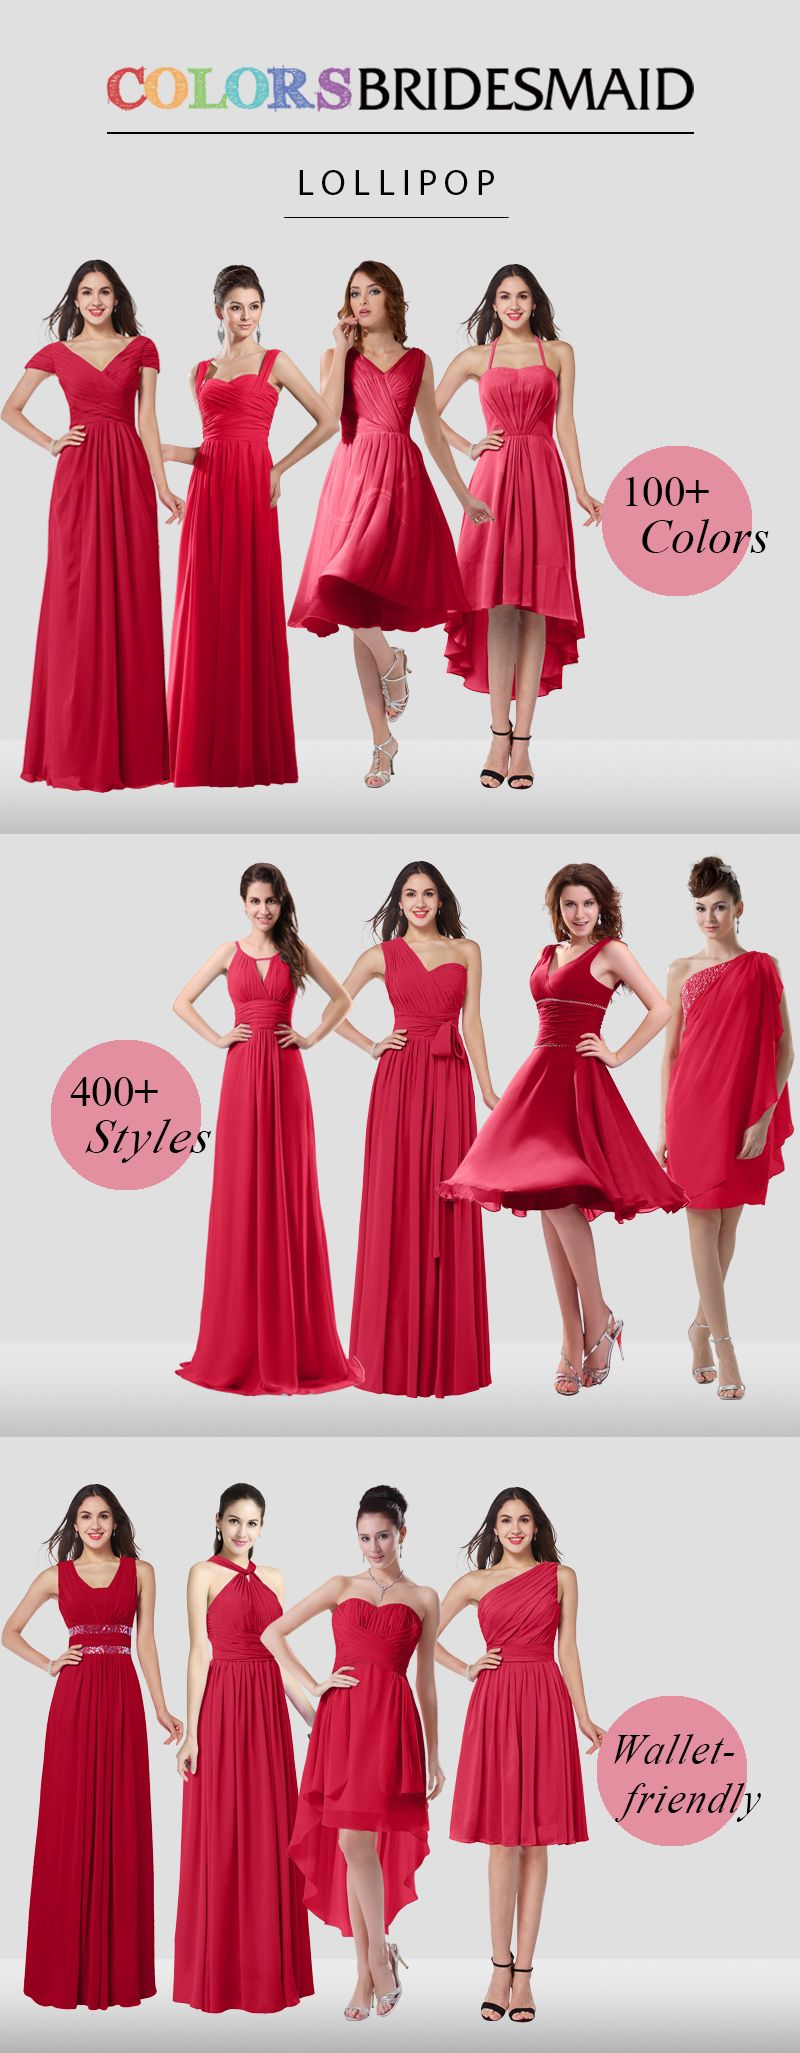 Red bridesmaid dresses are all custom made to flatter your figure ...